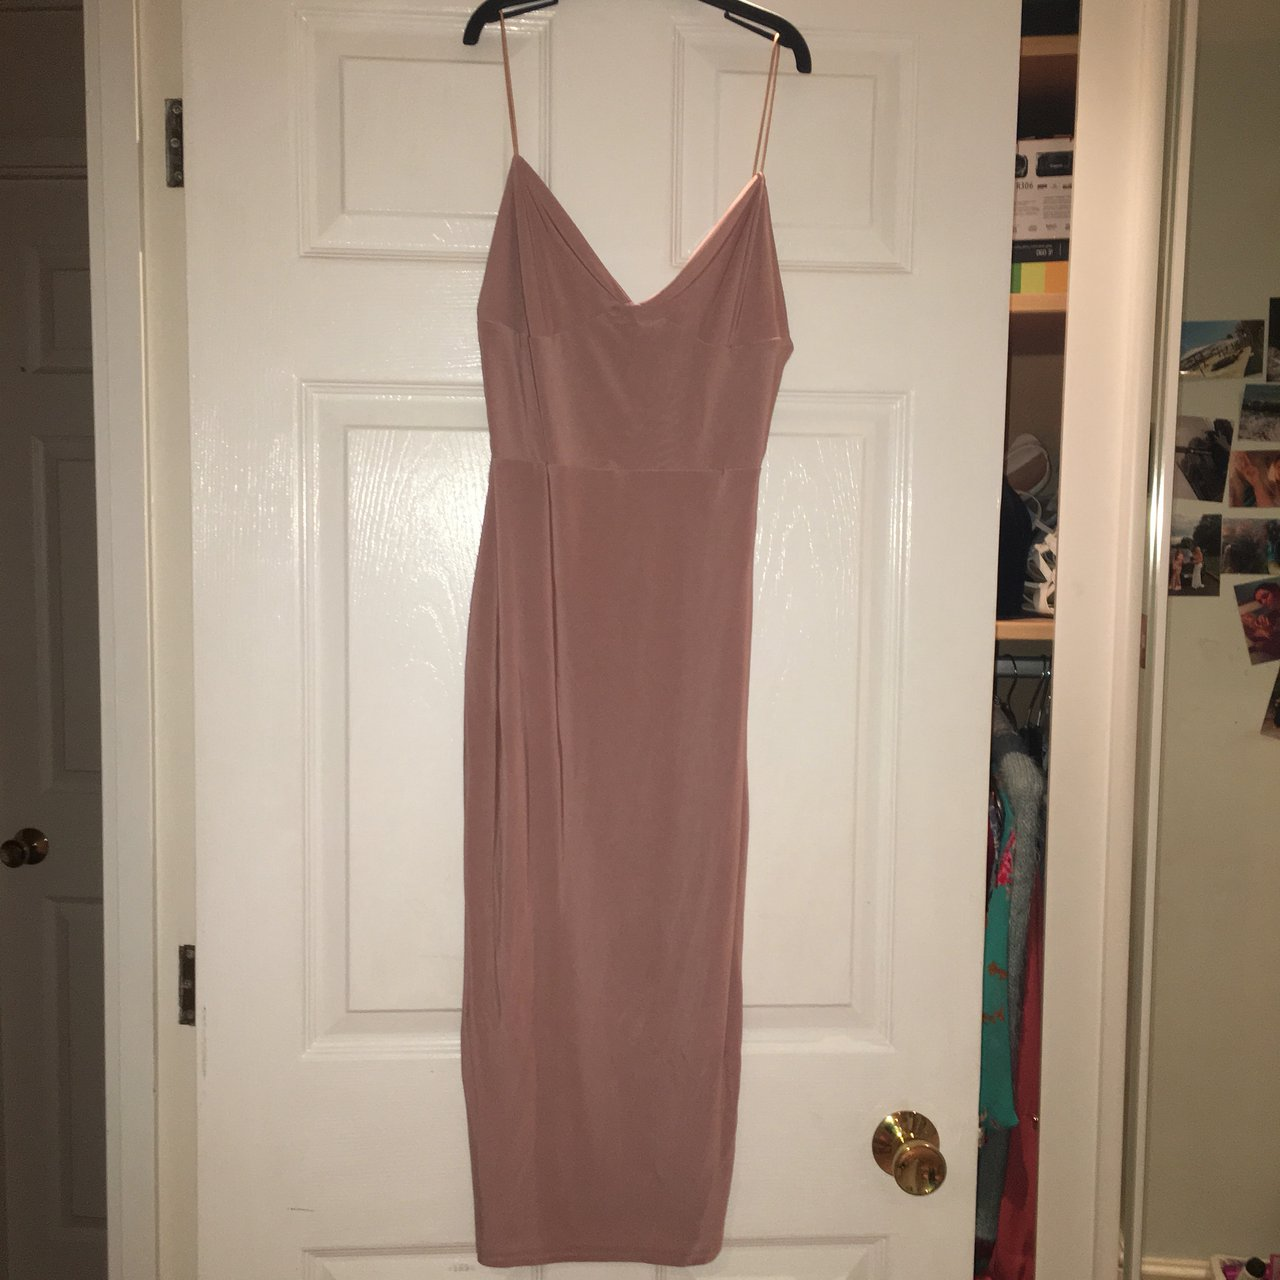 6868ca739d Boohoo size 10 slinky midi dress. Worn once. - Depop